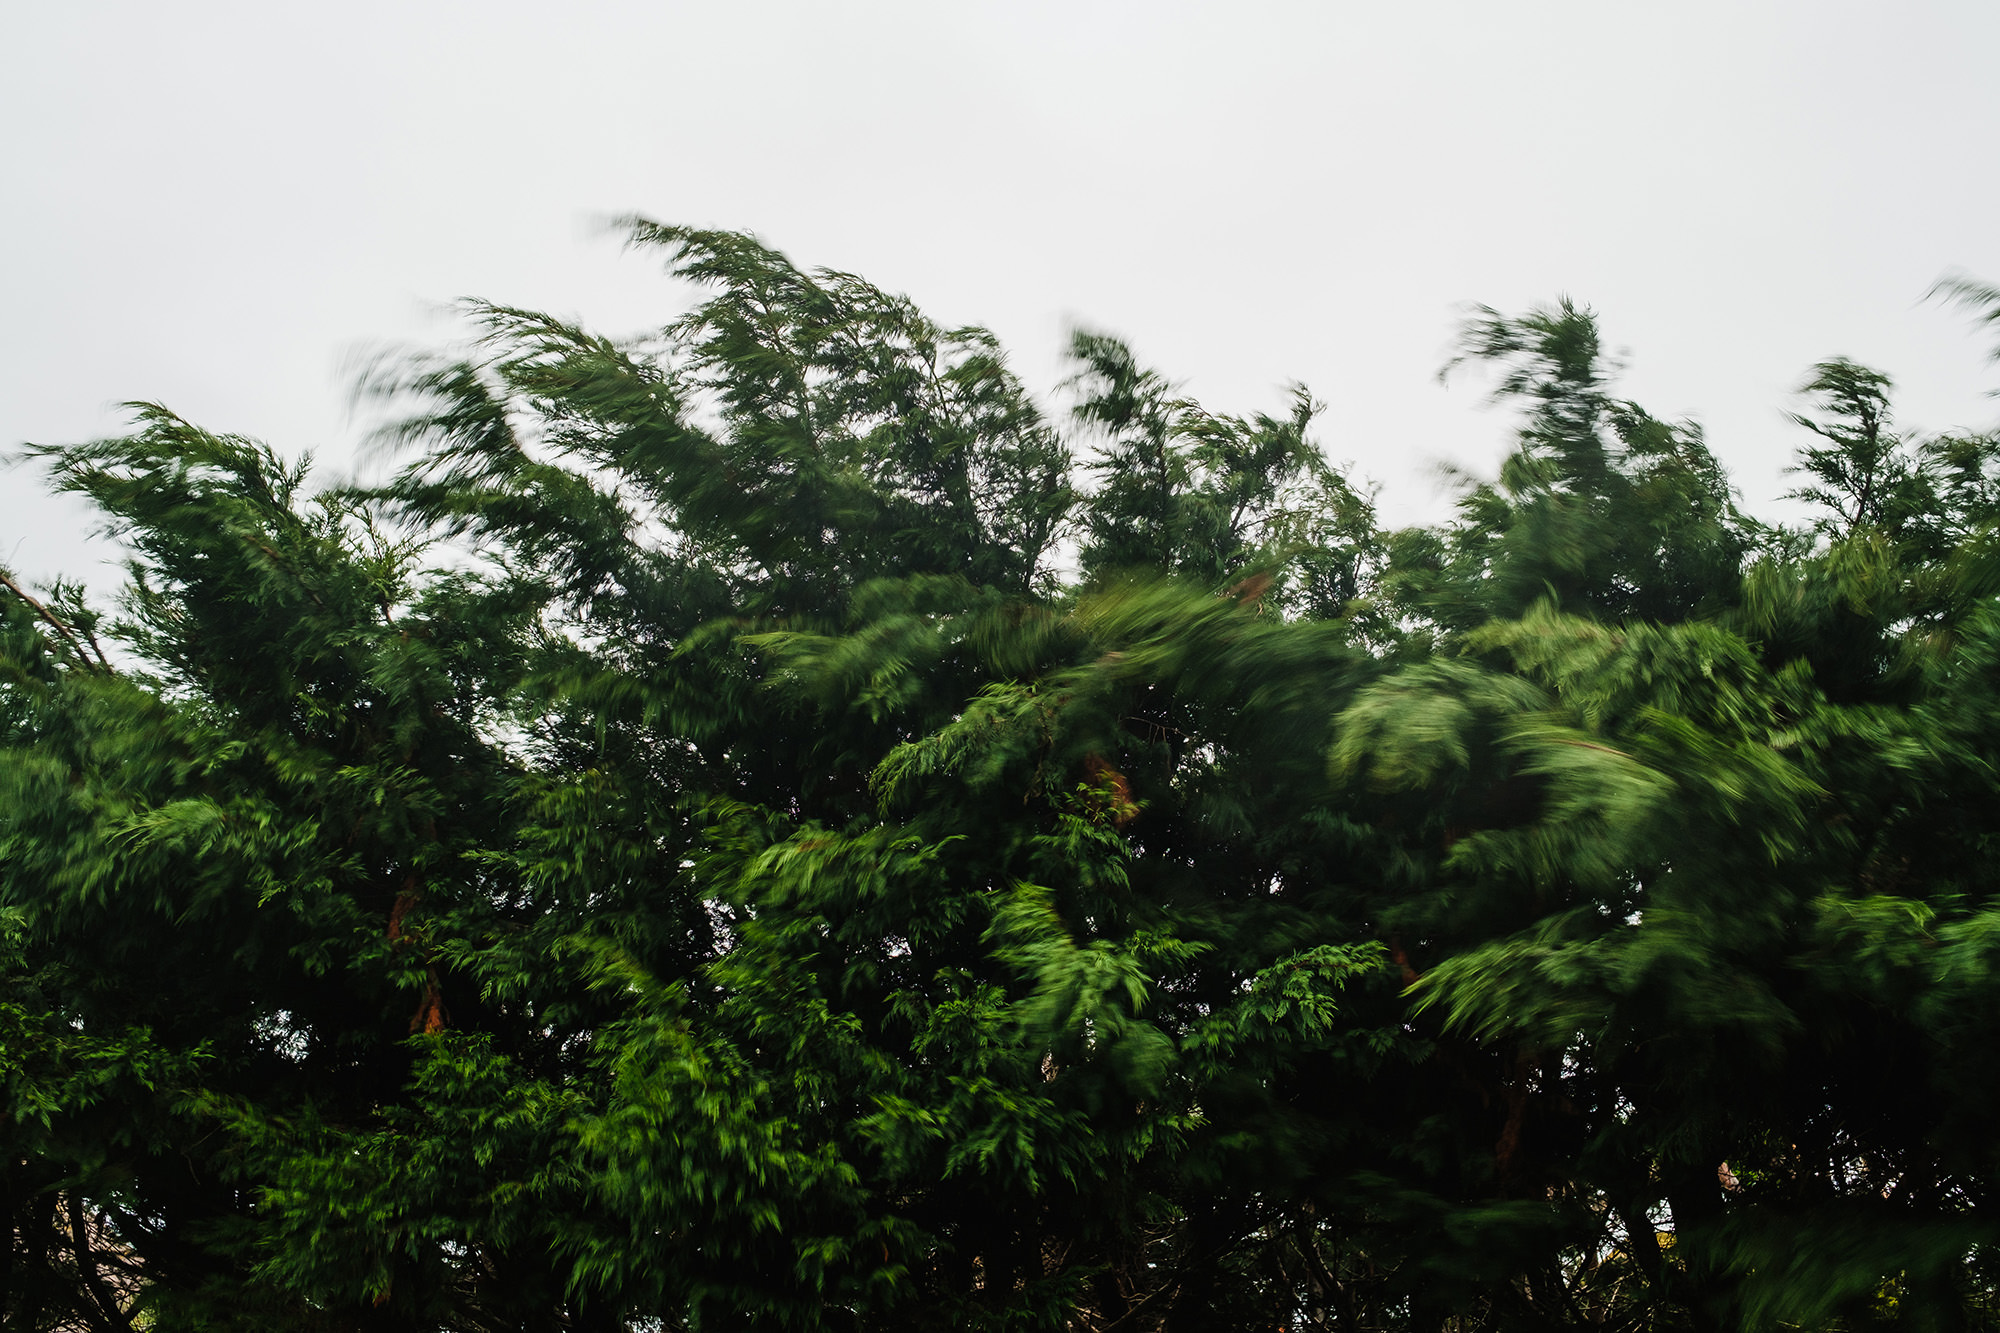 storm in the trees